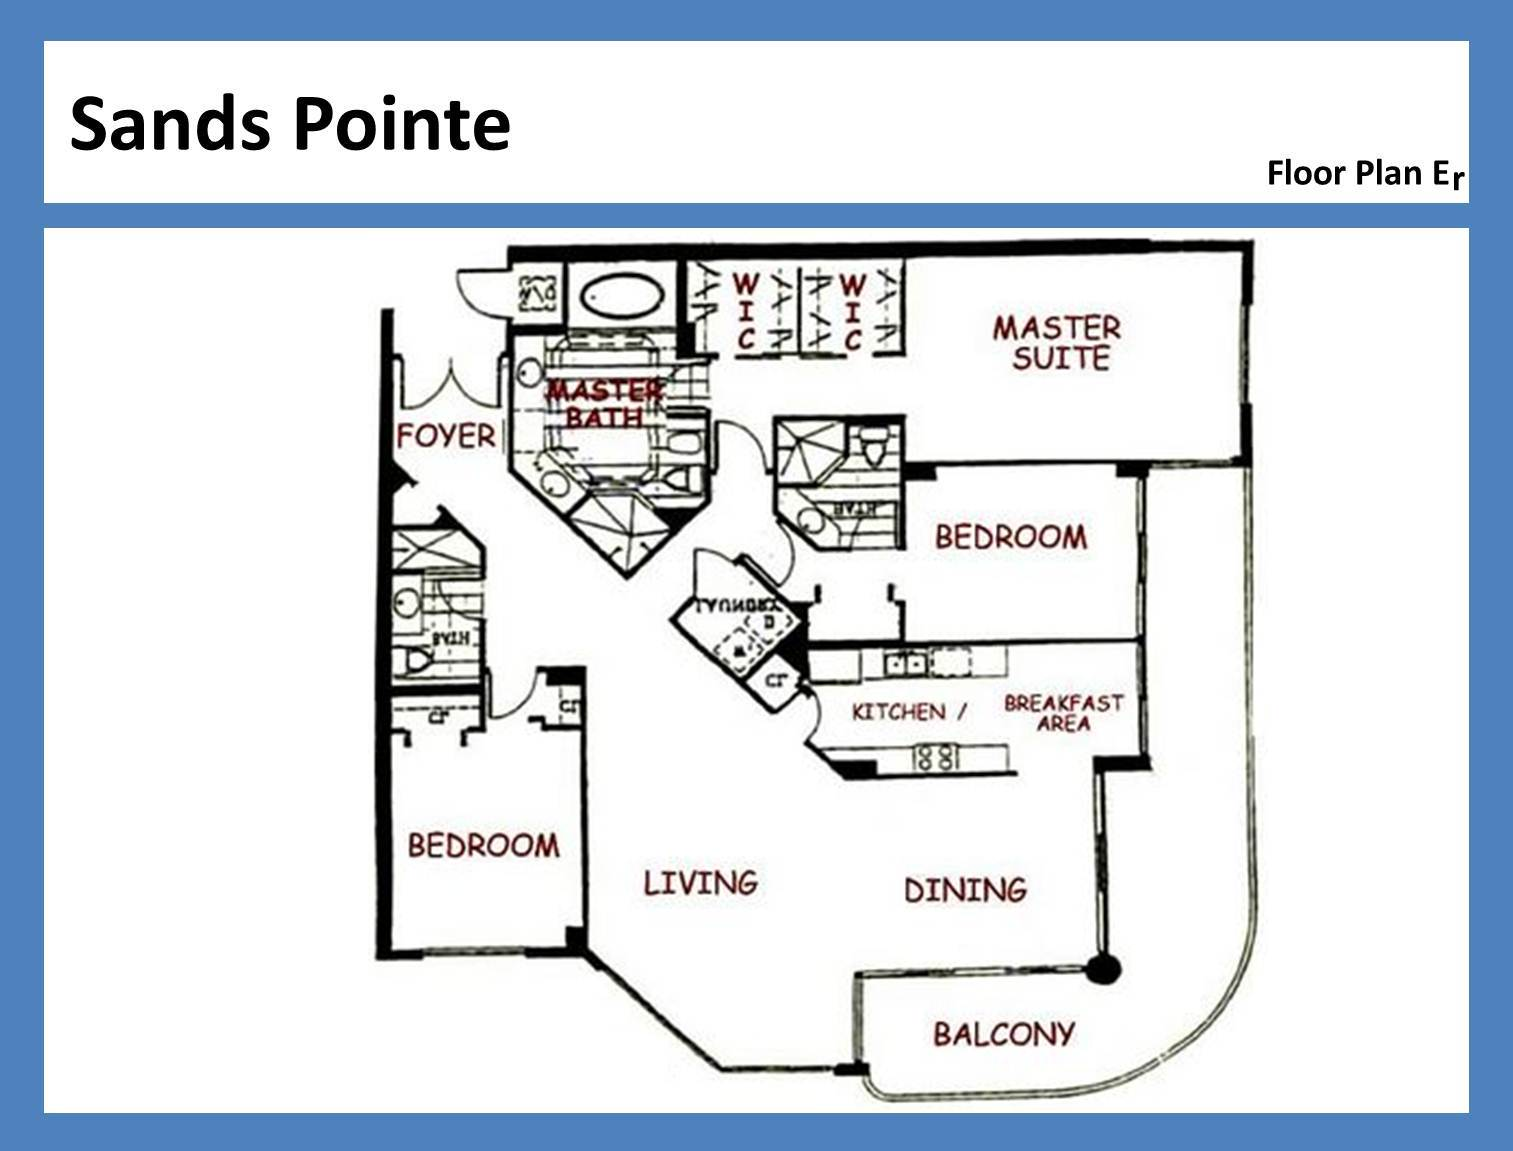 Sands Pointe - Floorplan 4